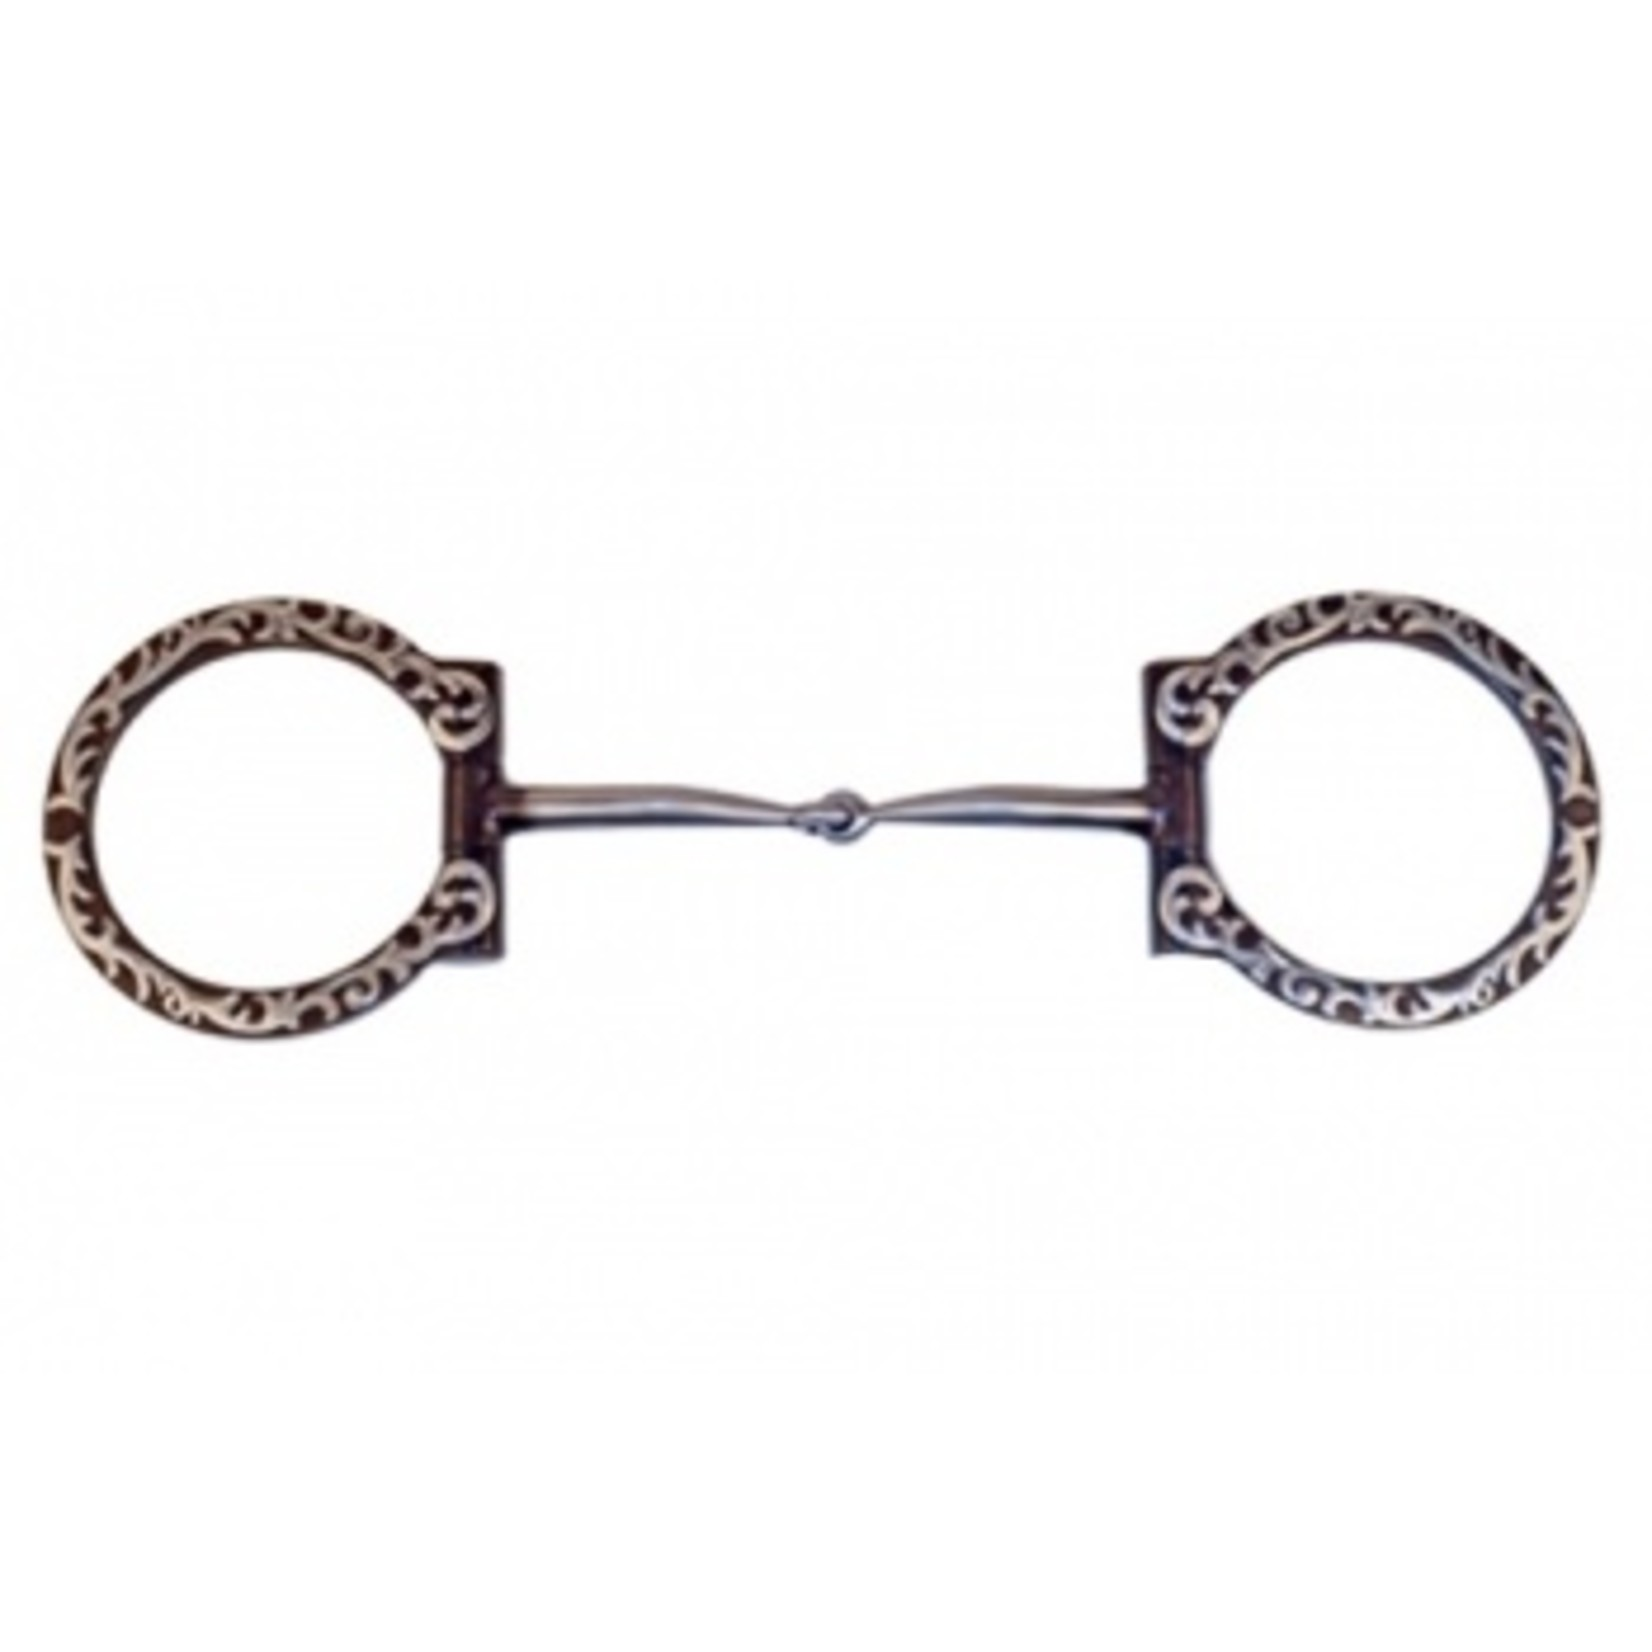 Floral Silver Mounted D-Ring Snaffle